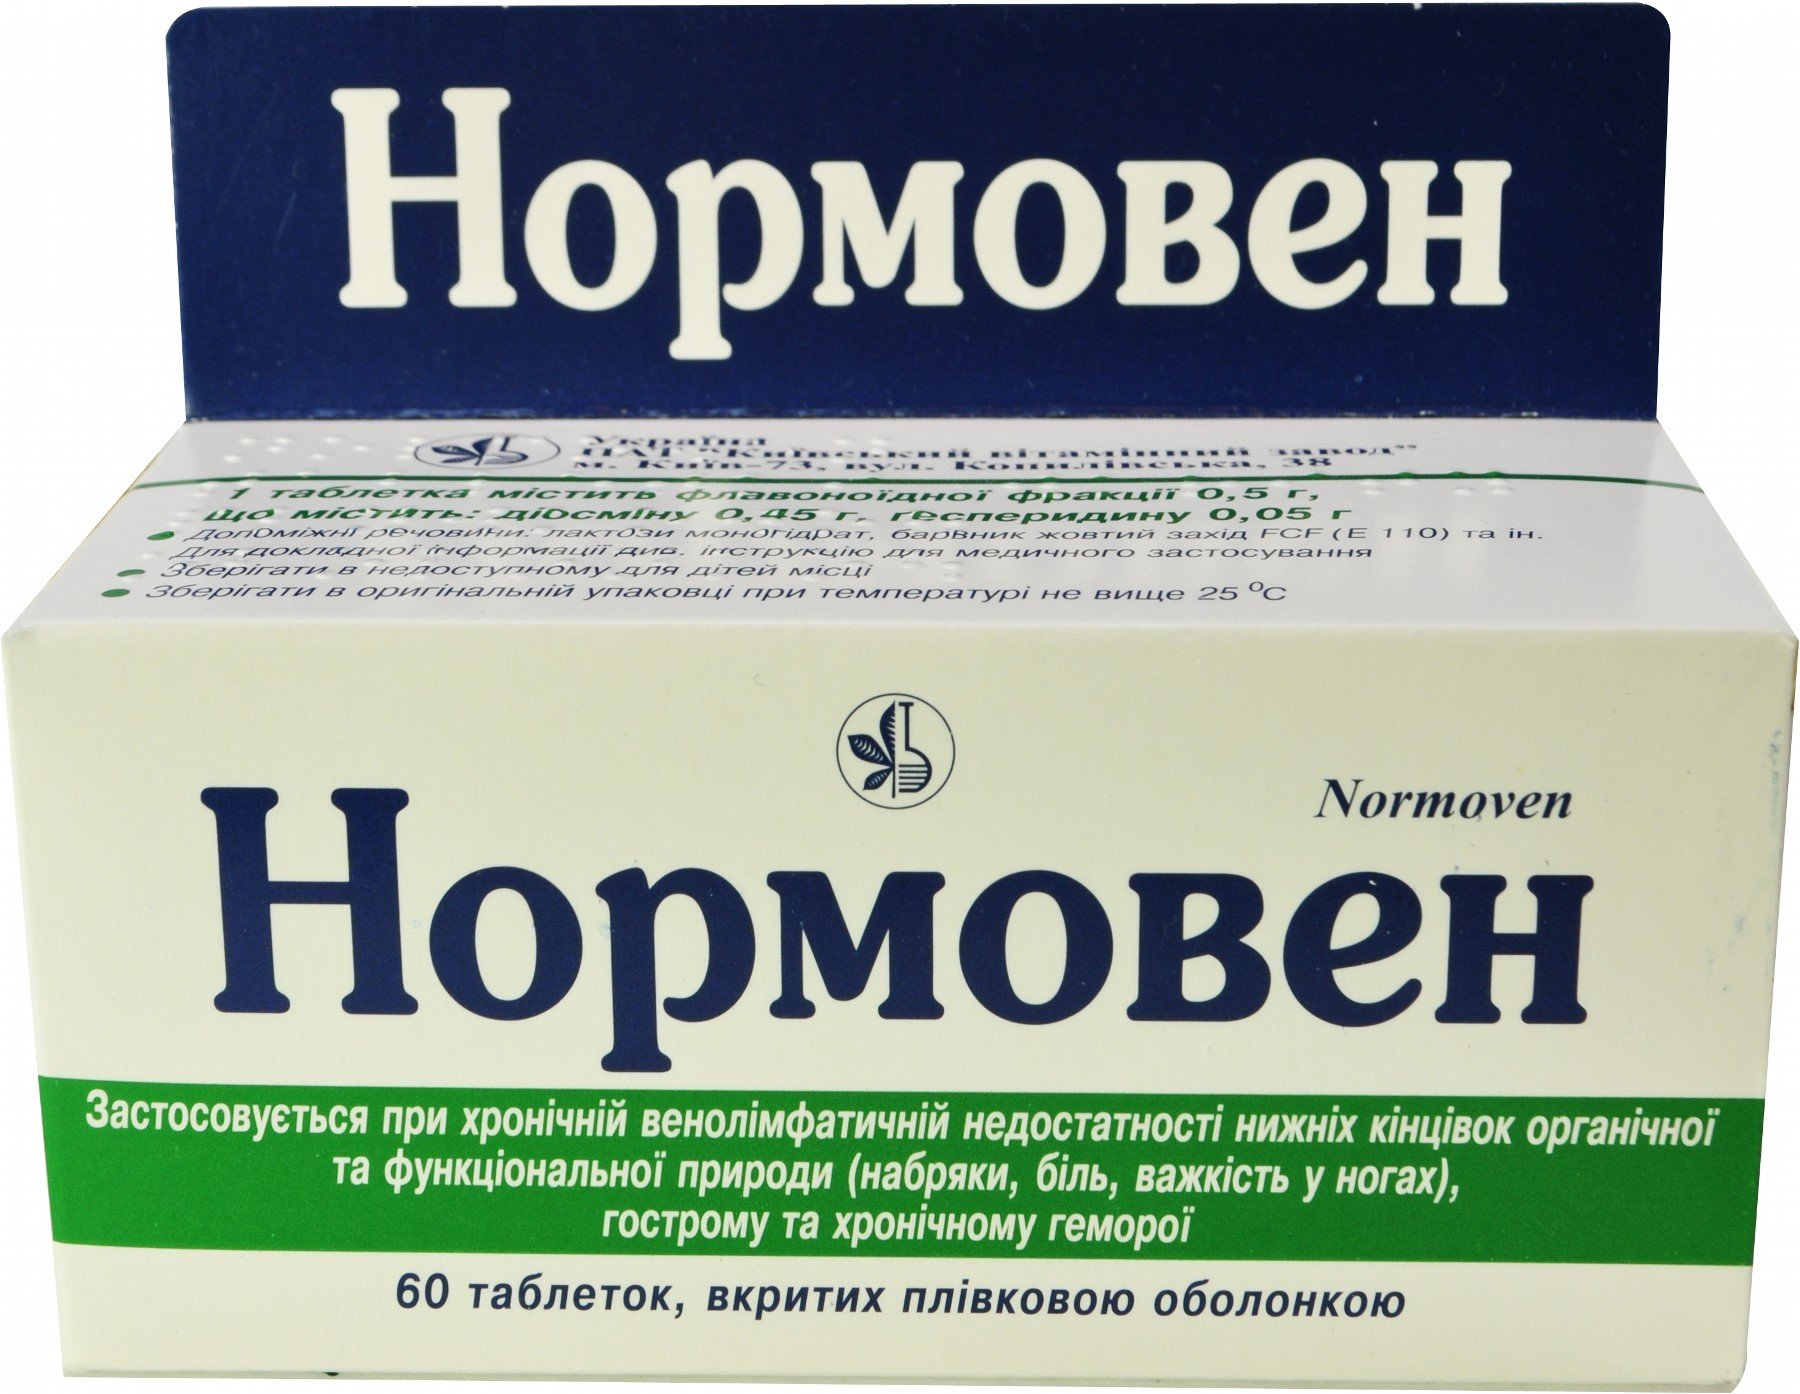 Normoven (diosmin) coated tablets №60